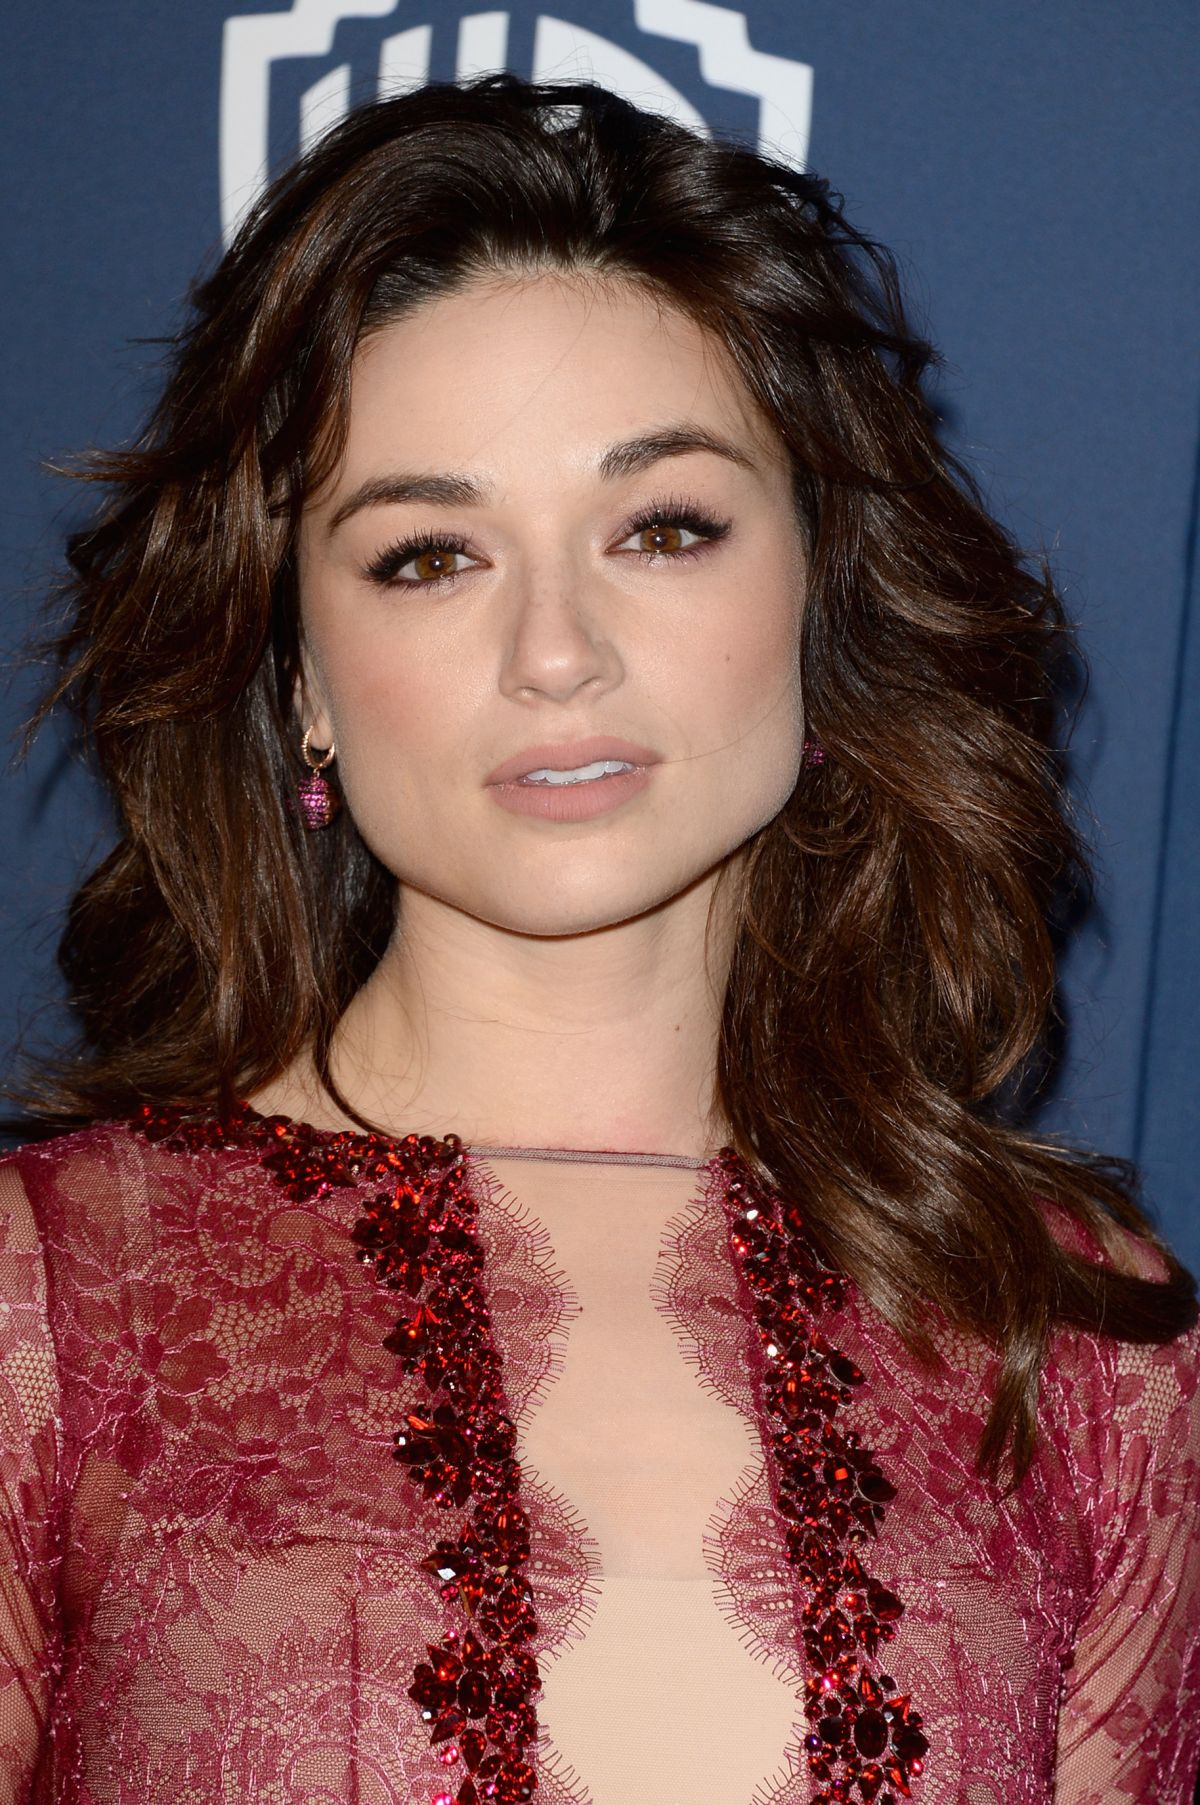 Crystal Reed Archives - Page 2 of 3 - HawtCelebs